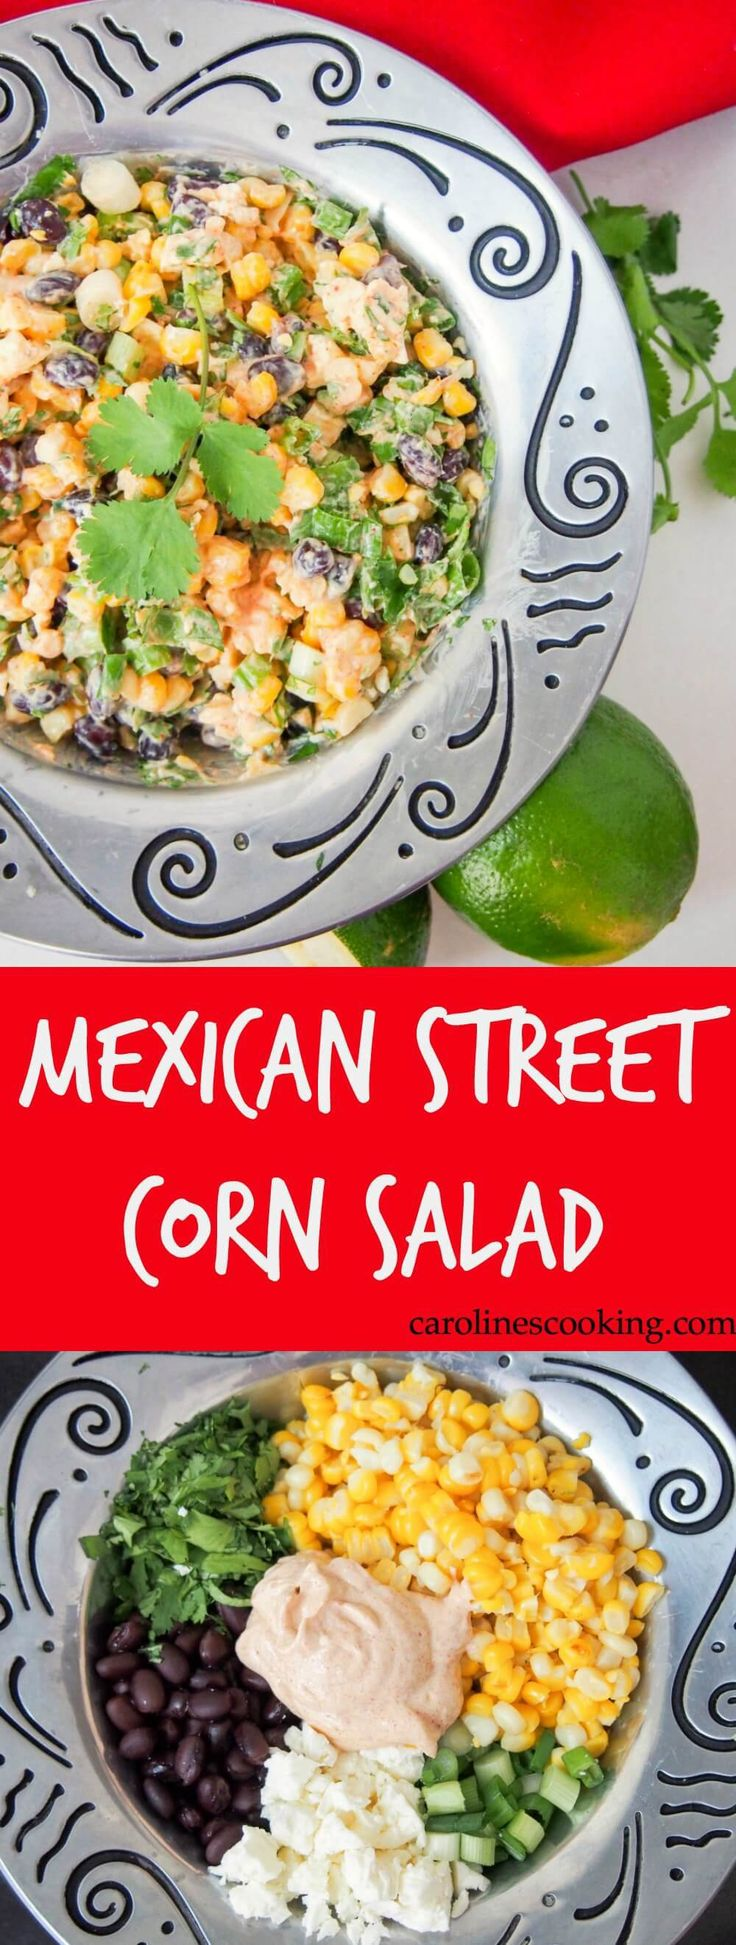 This Mexican street corn salad is easy to prepare and packed with delicious fresh flavors. With a healthier dressing, it makes a great side or potluck salad. Plus, perfect for Cinco de Mayo, of course. GF, vegetarian